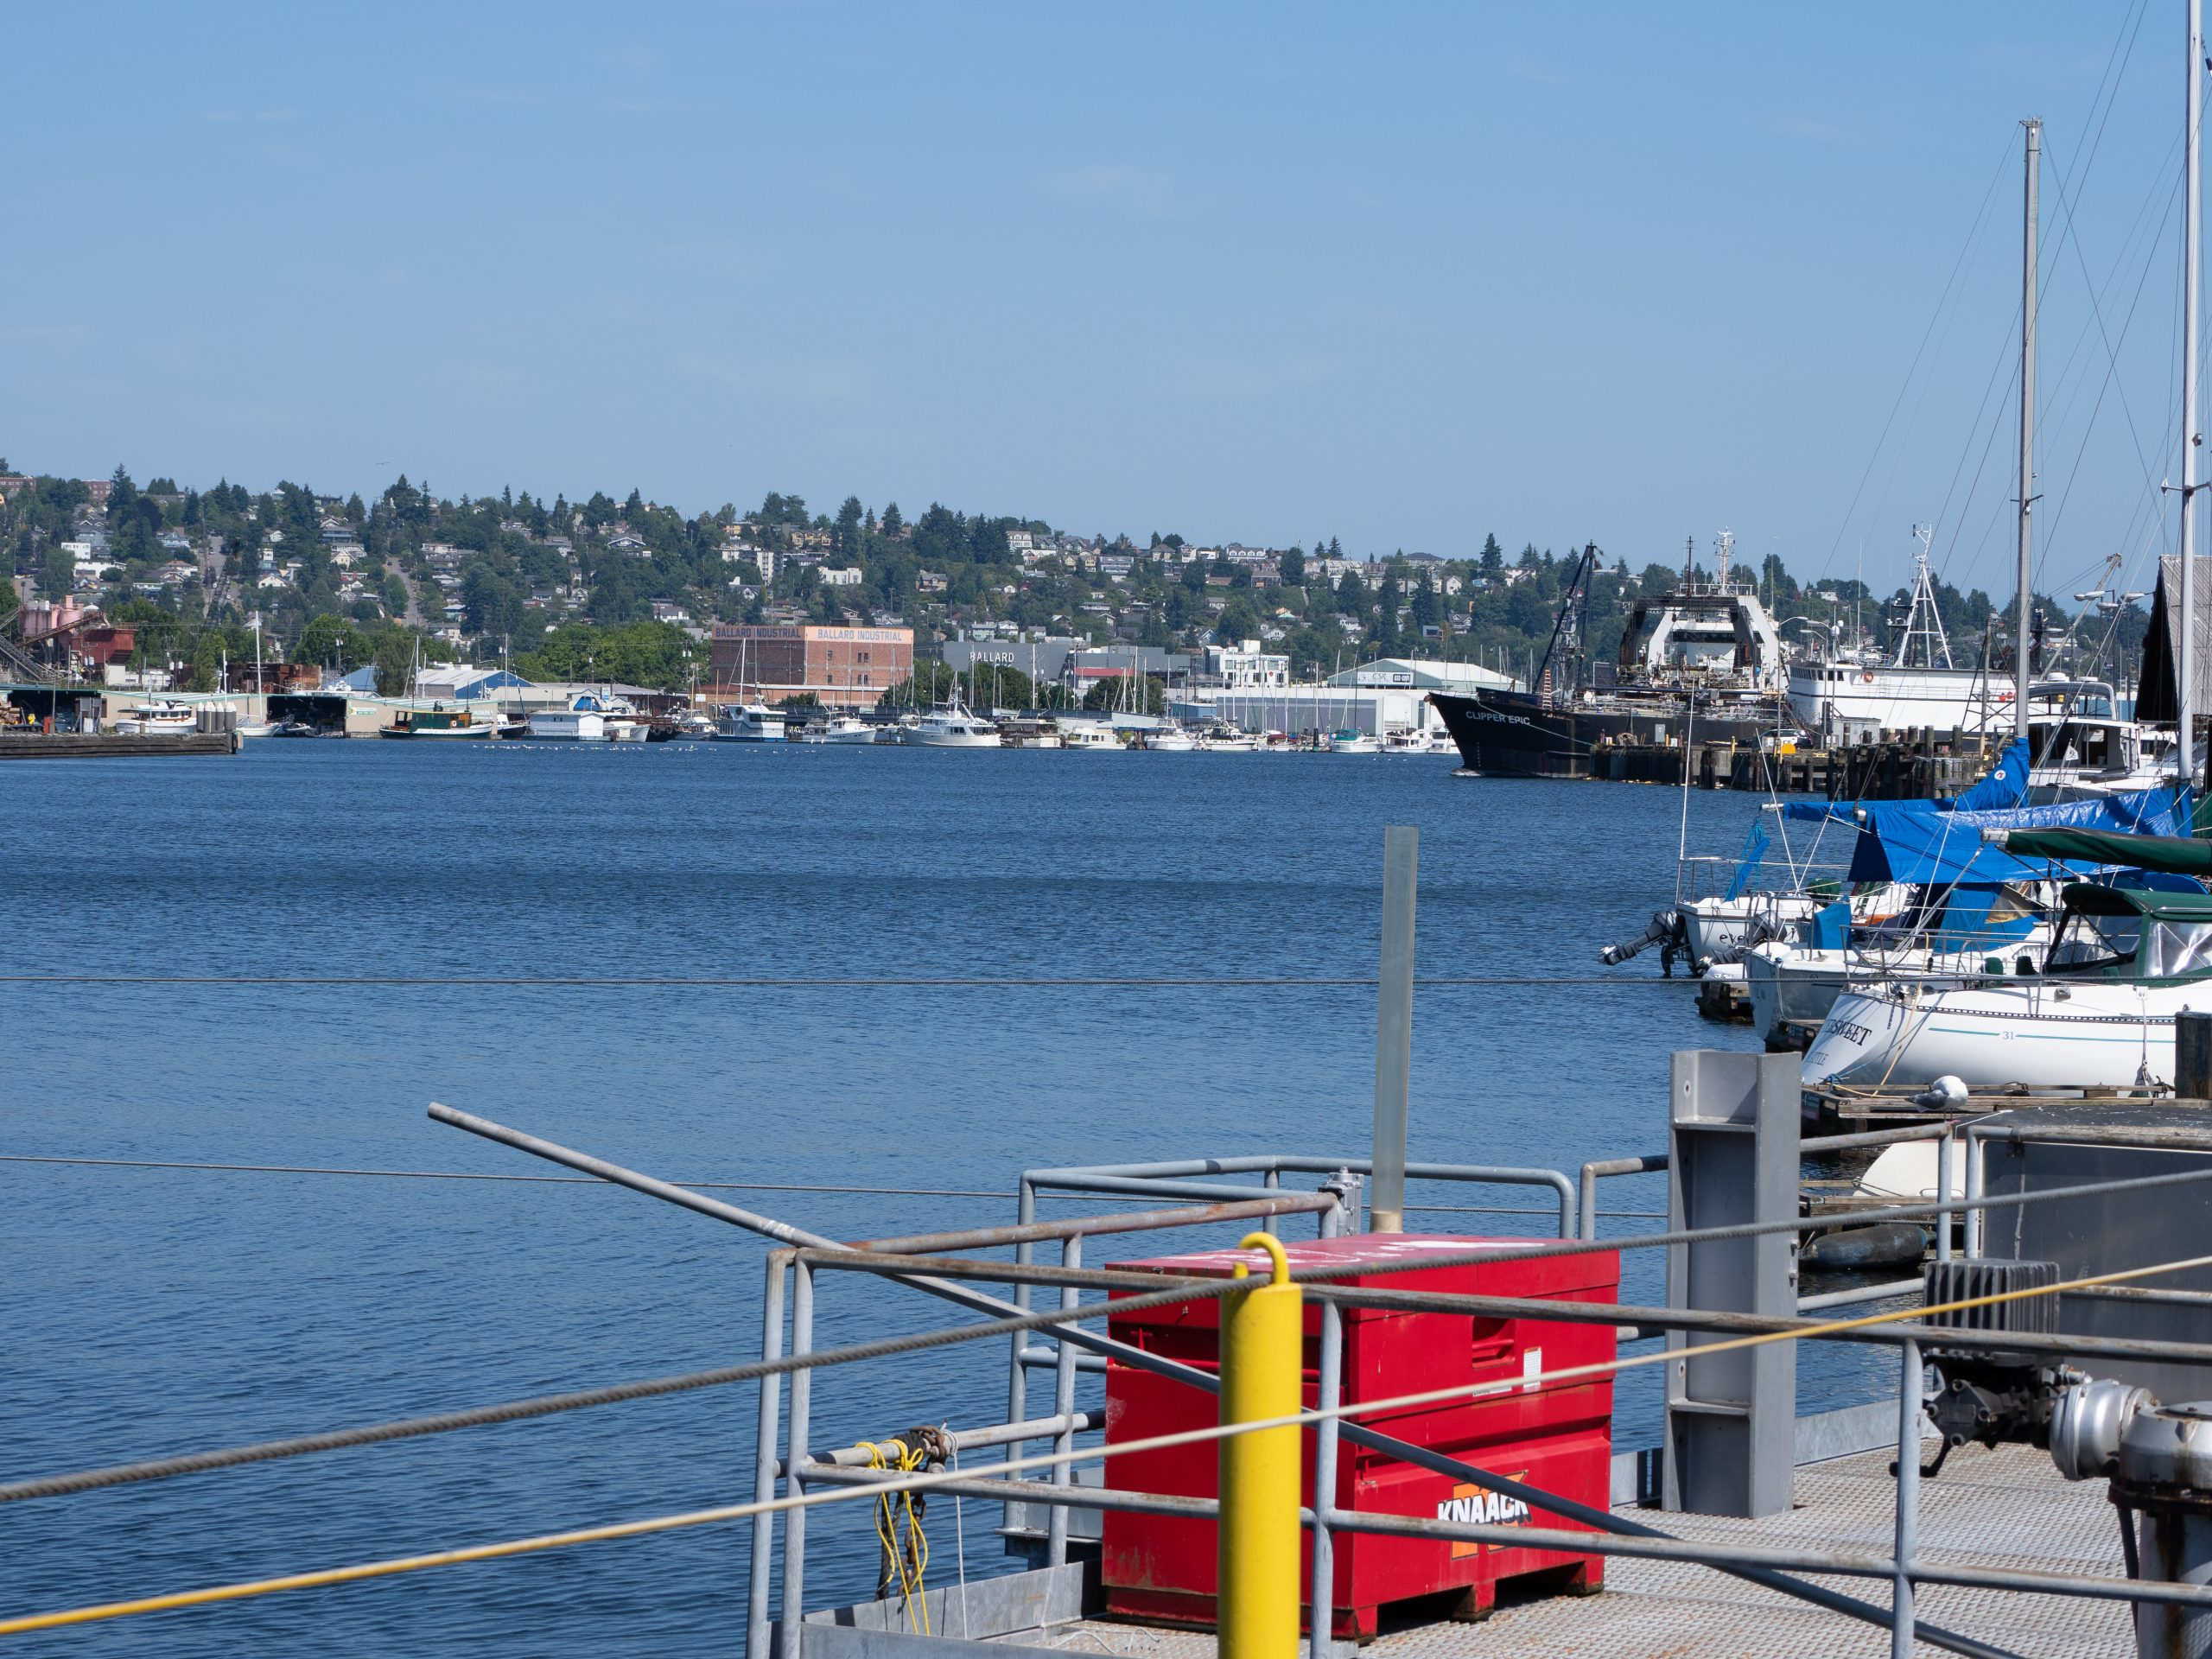 Image is a view across the Lake Washington Ship Canal from a platform with metal railings and a red metal box, looking over several docked sailboats and fishing vessels towards trees, buildings, and boats on the opposite shoreline.